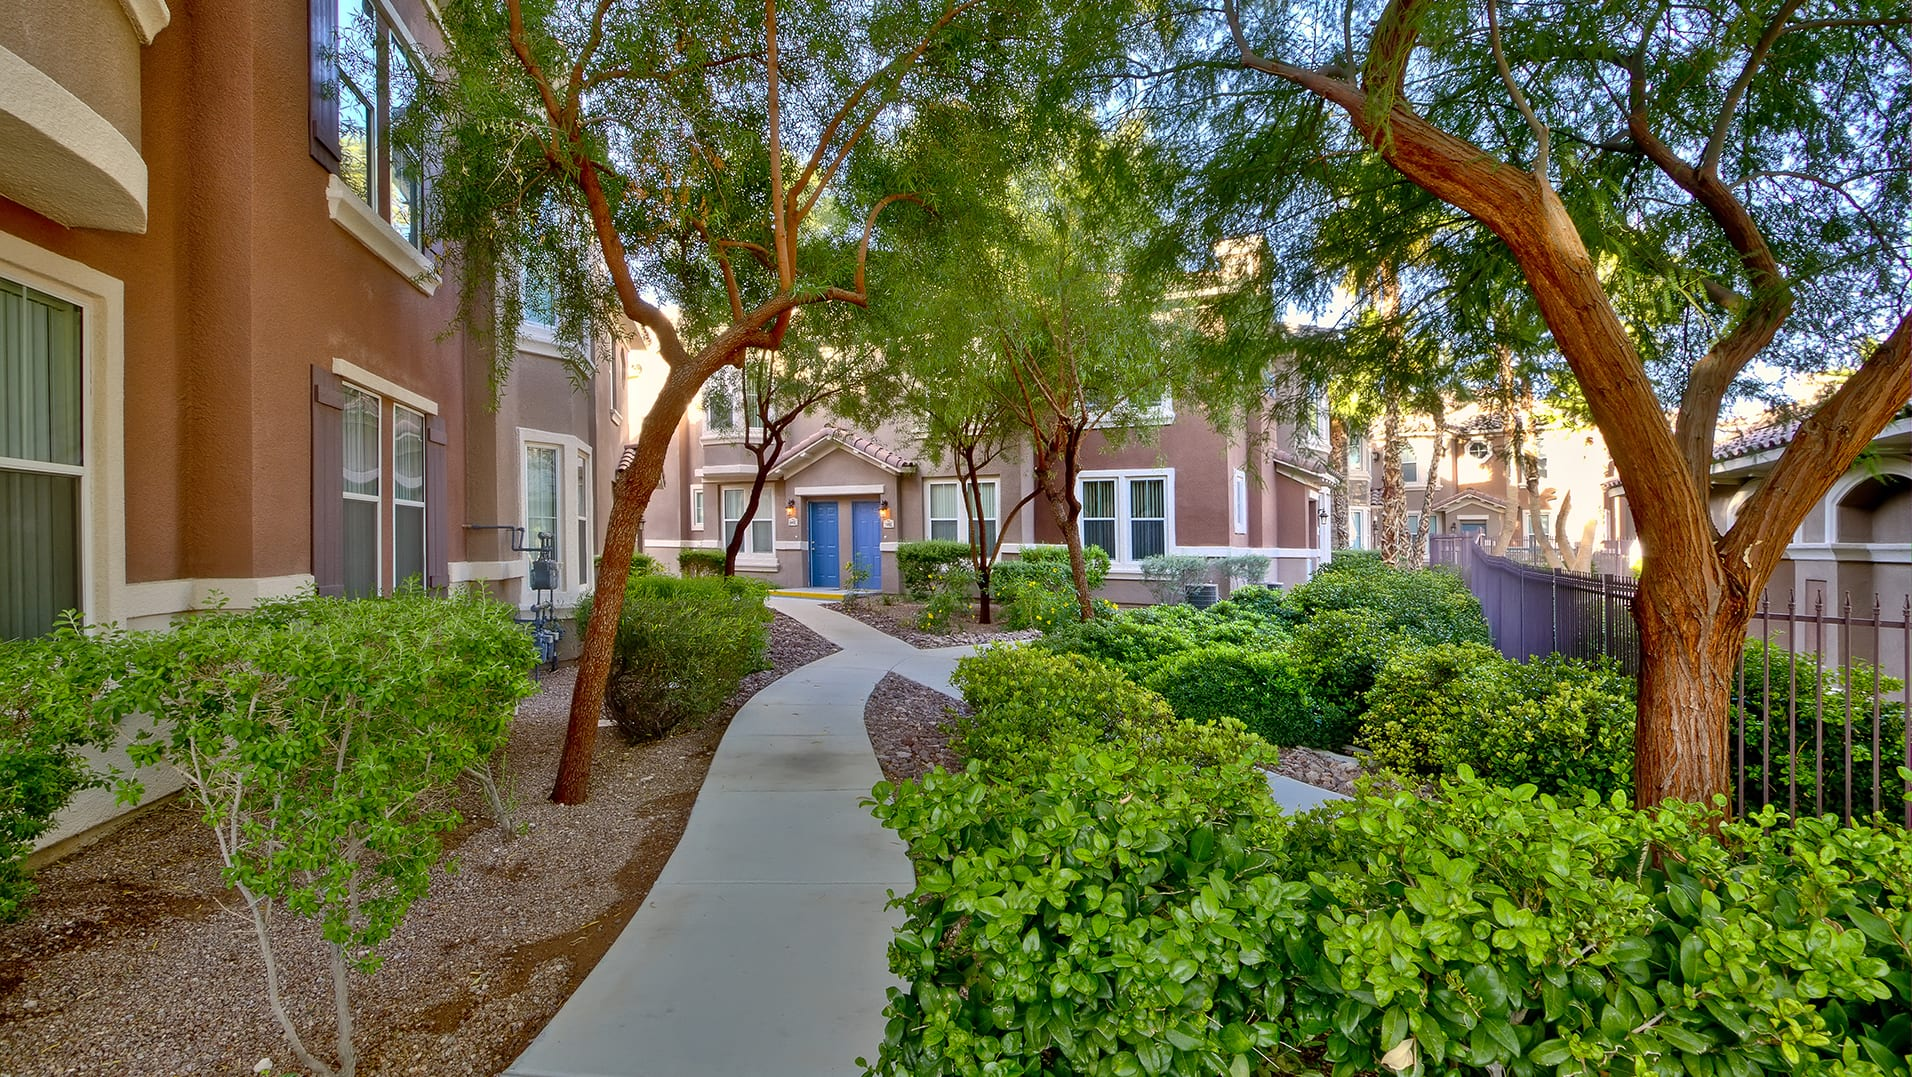 Paved paths, landscaping, and trees leading to apartment homes at Tesora.